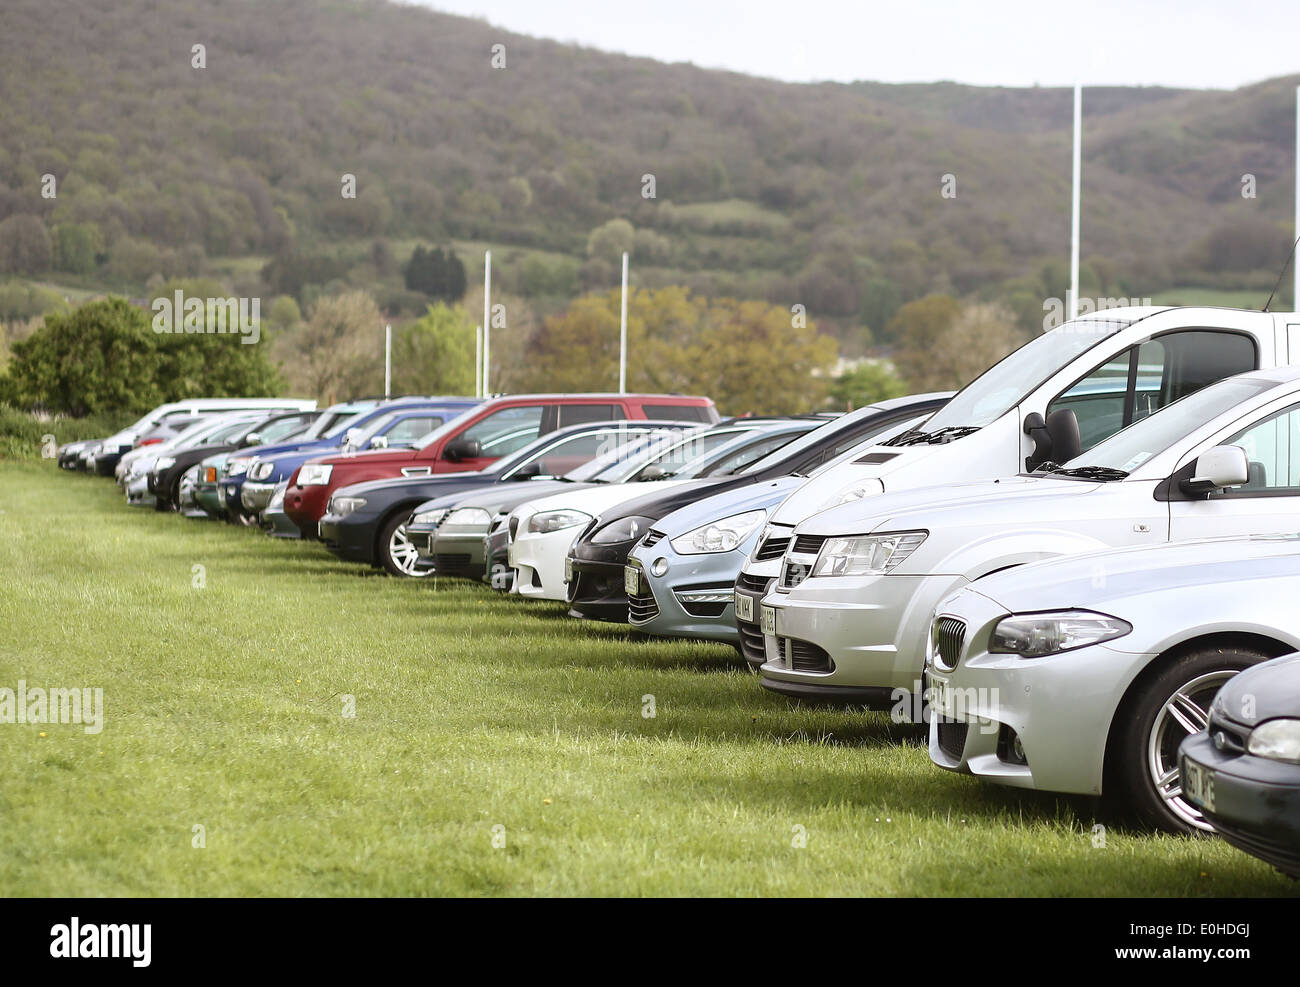 Lines of parked cars, SUV's and minivans on a grass field used as a parking lot for a sports event in Cheddar, 27 April 2014 - Stock Image